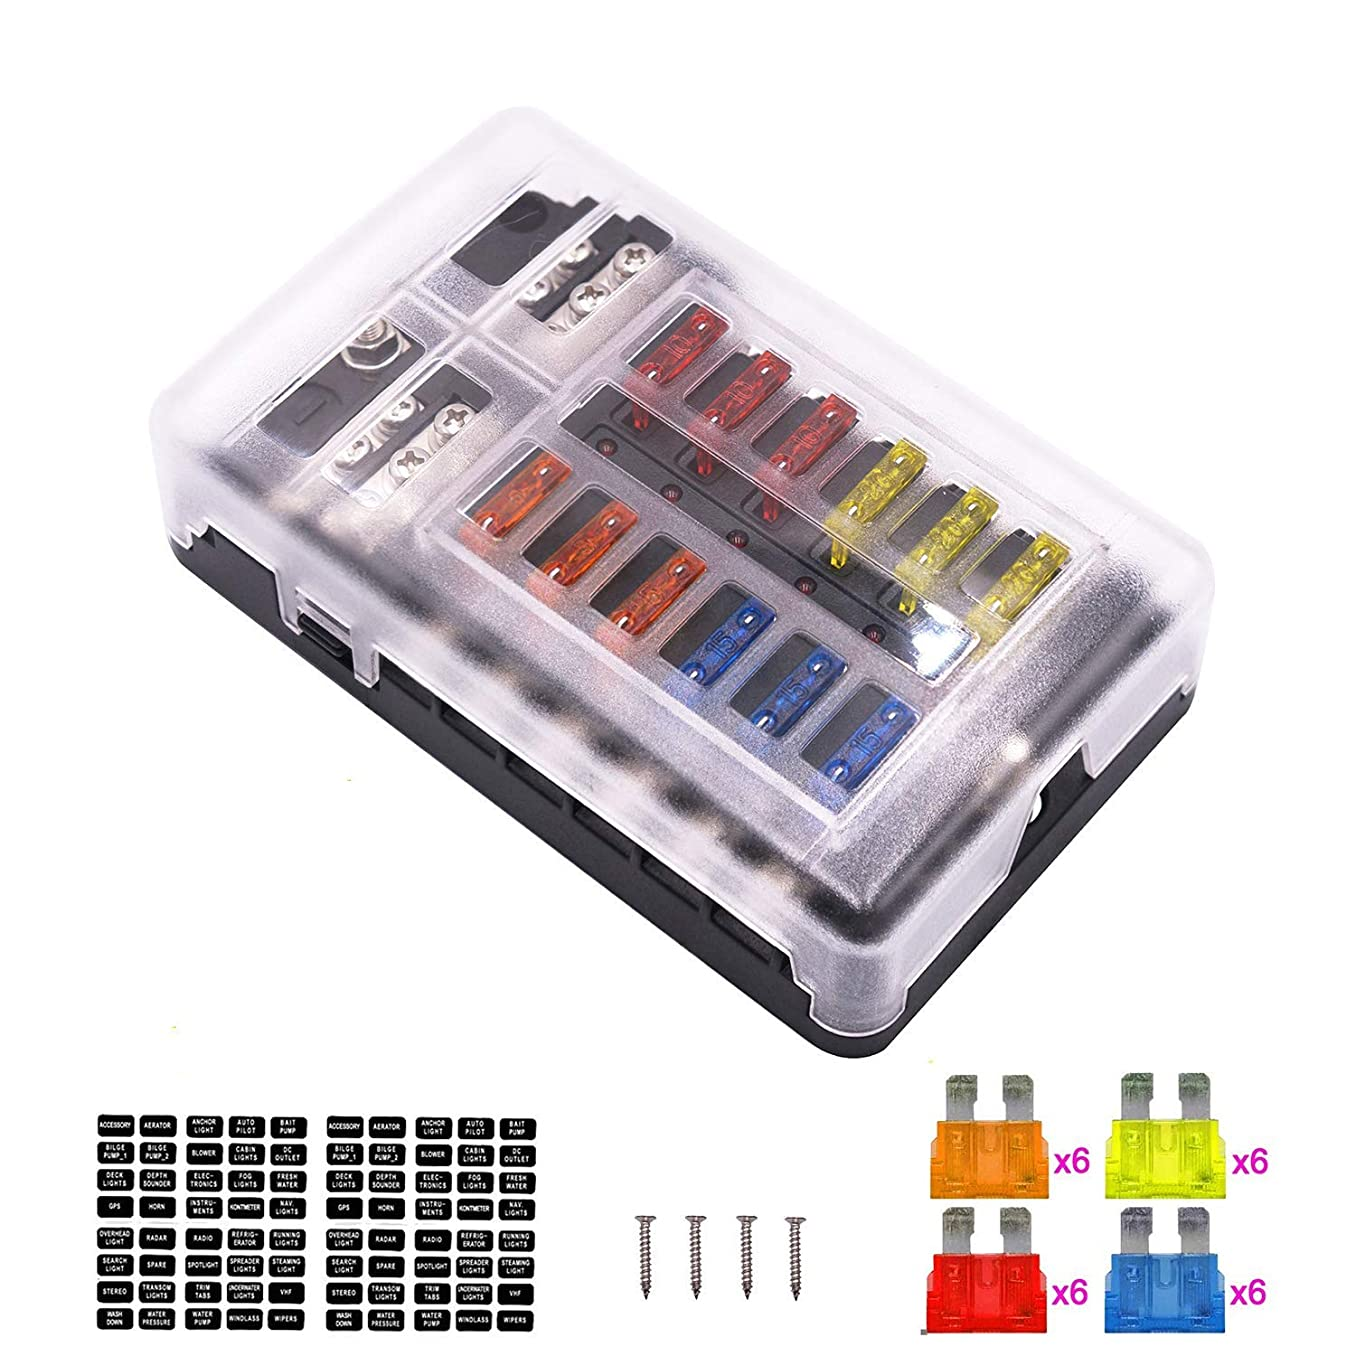 12-Way Fuse Box Blade Fuse Block Holder Screw Nut Terminal W/Negative Bus 5A 10A 15A 20A Free Fuses LED Indicator Waterpoof Cover for Automotive Car Marine Boat